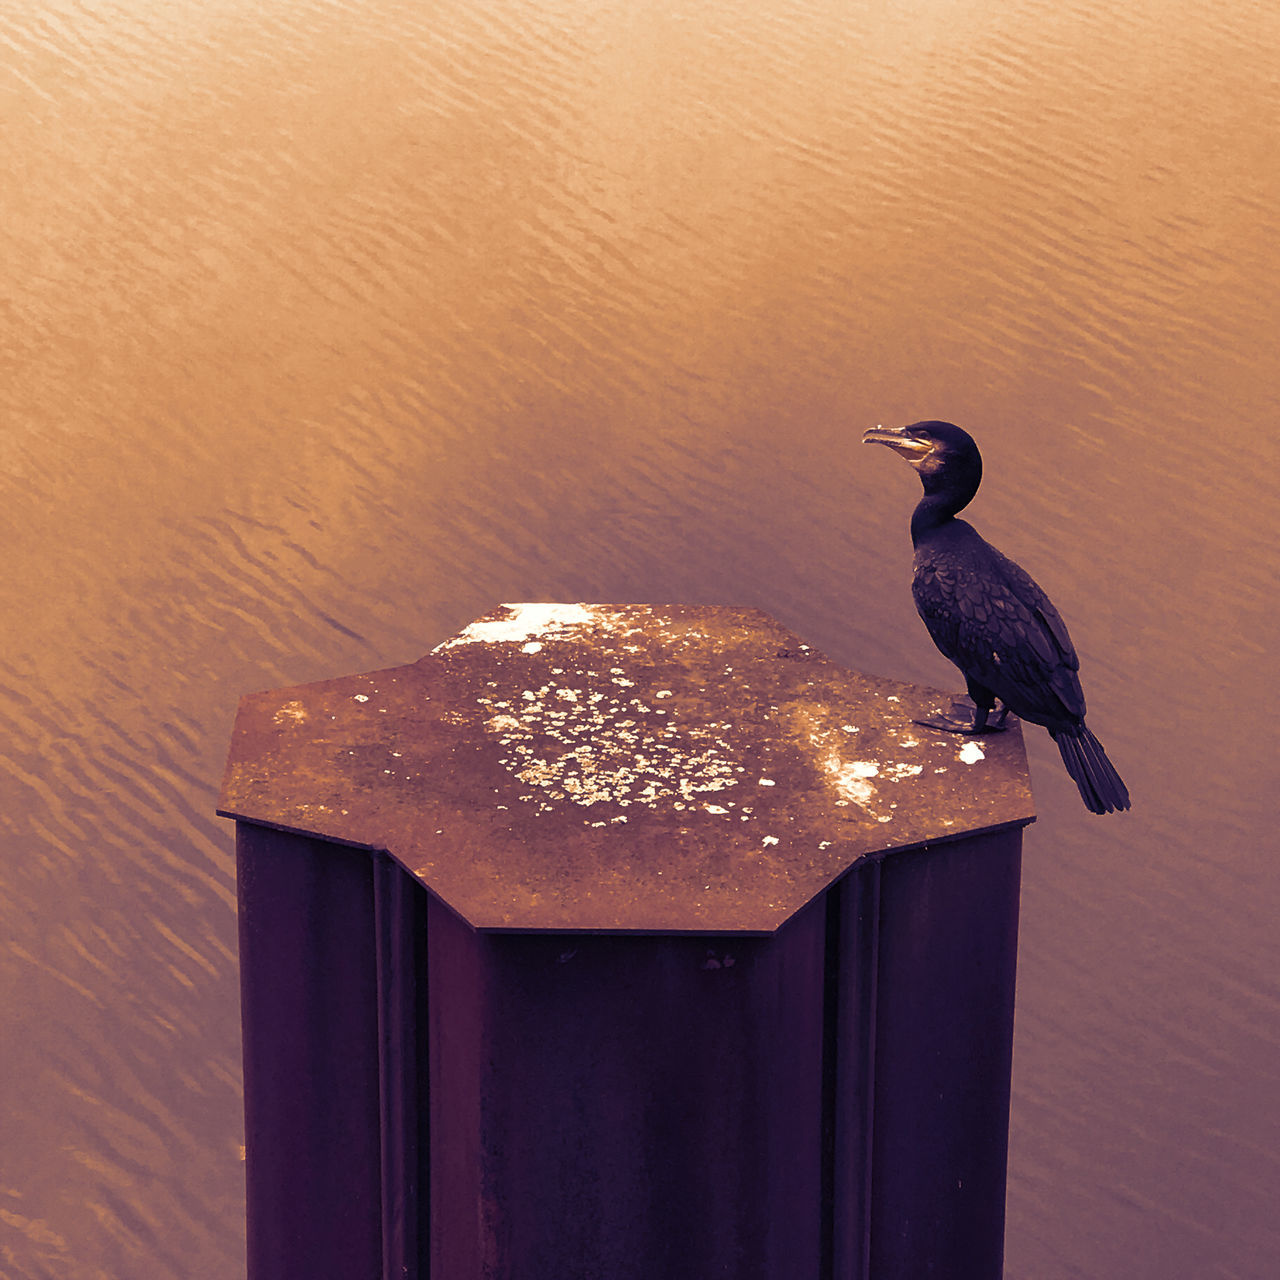 bird, animal themes, animals in the wild, one animal, animal wildlife, perching, no people, water, nature, day, outdoors, close-up